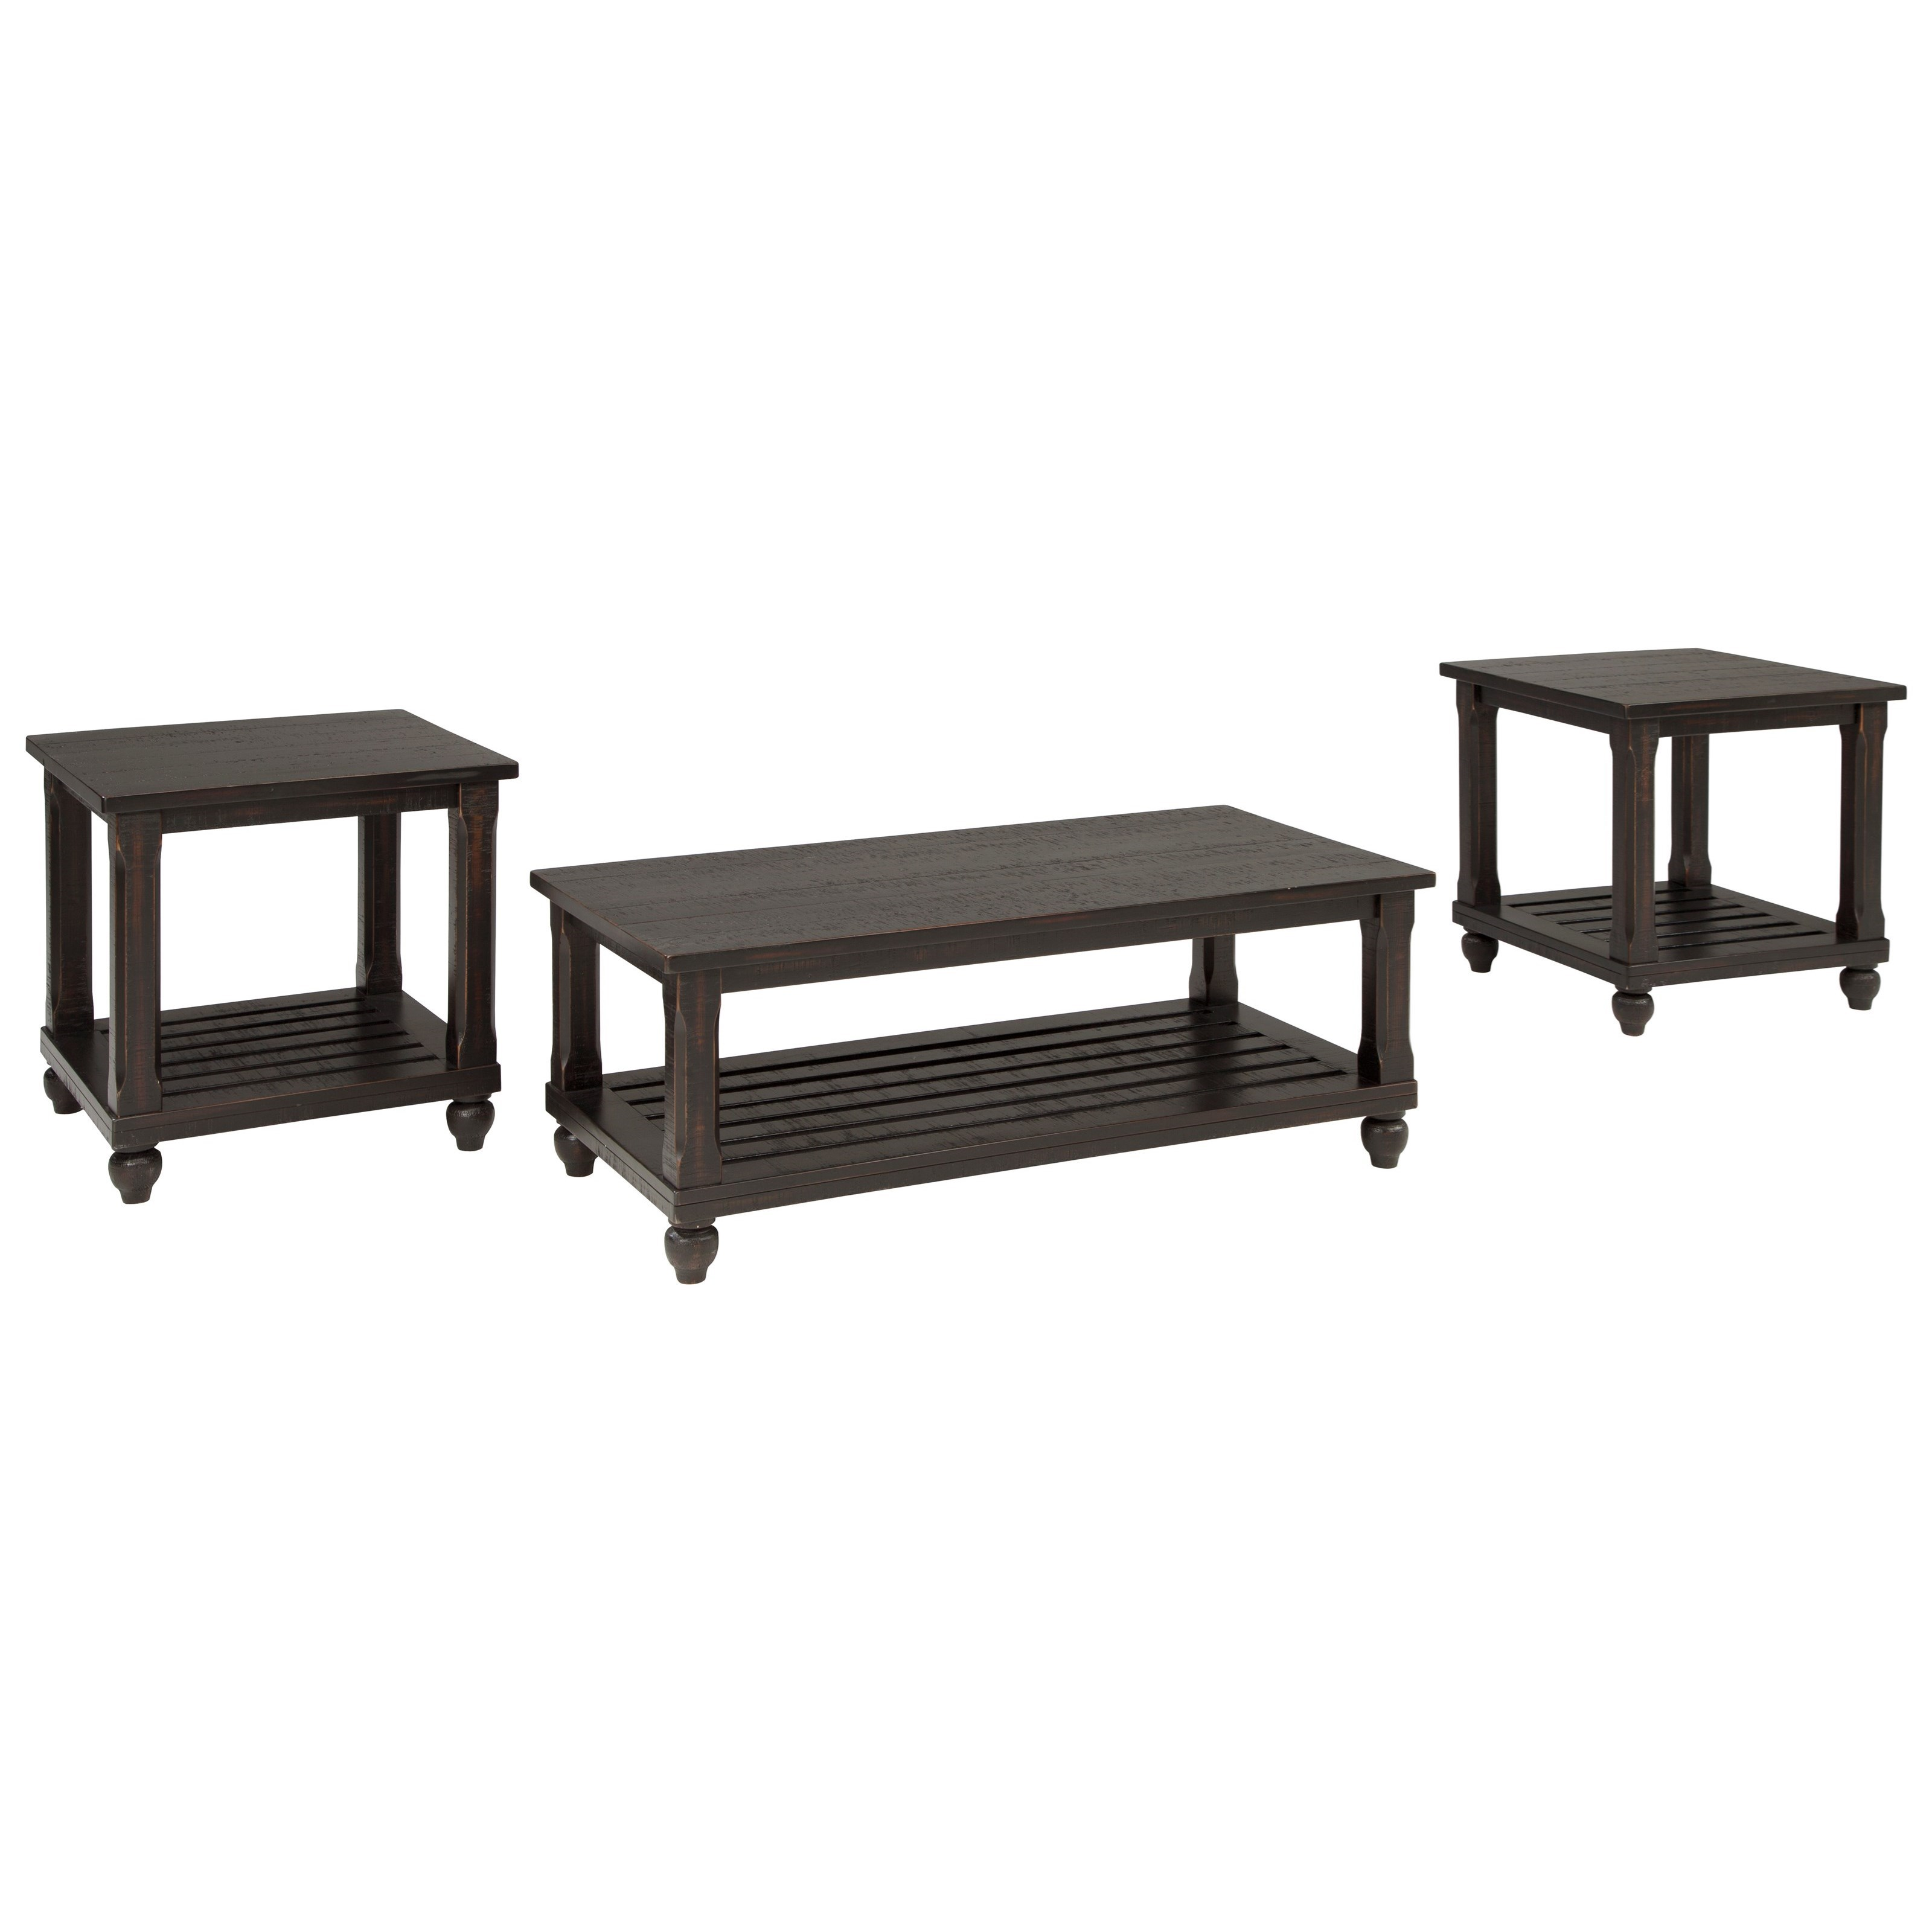 Signature Design by Ashley Mallacar Occasional Table Set - Item Number: T145-13